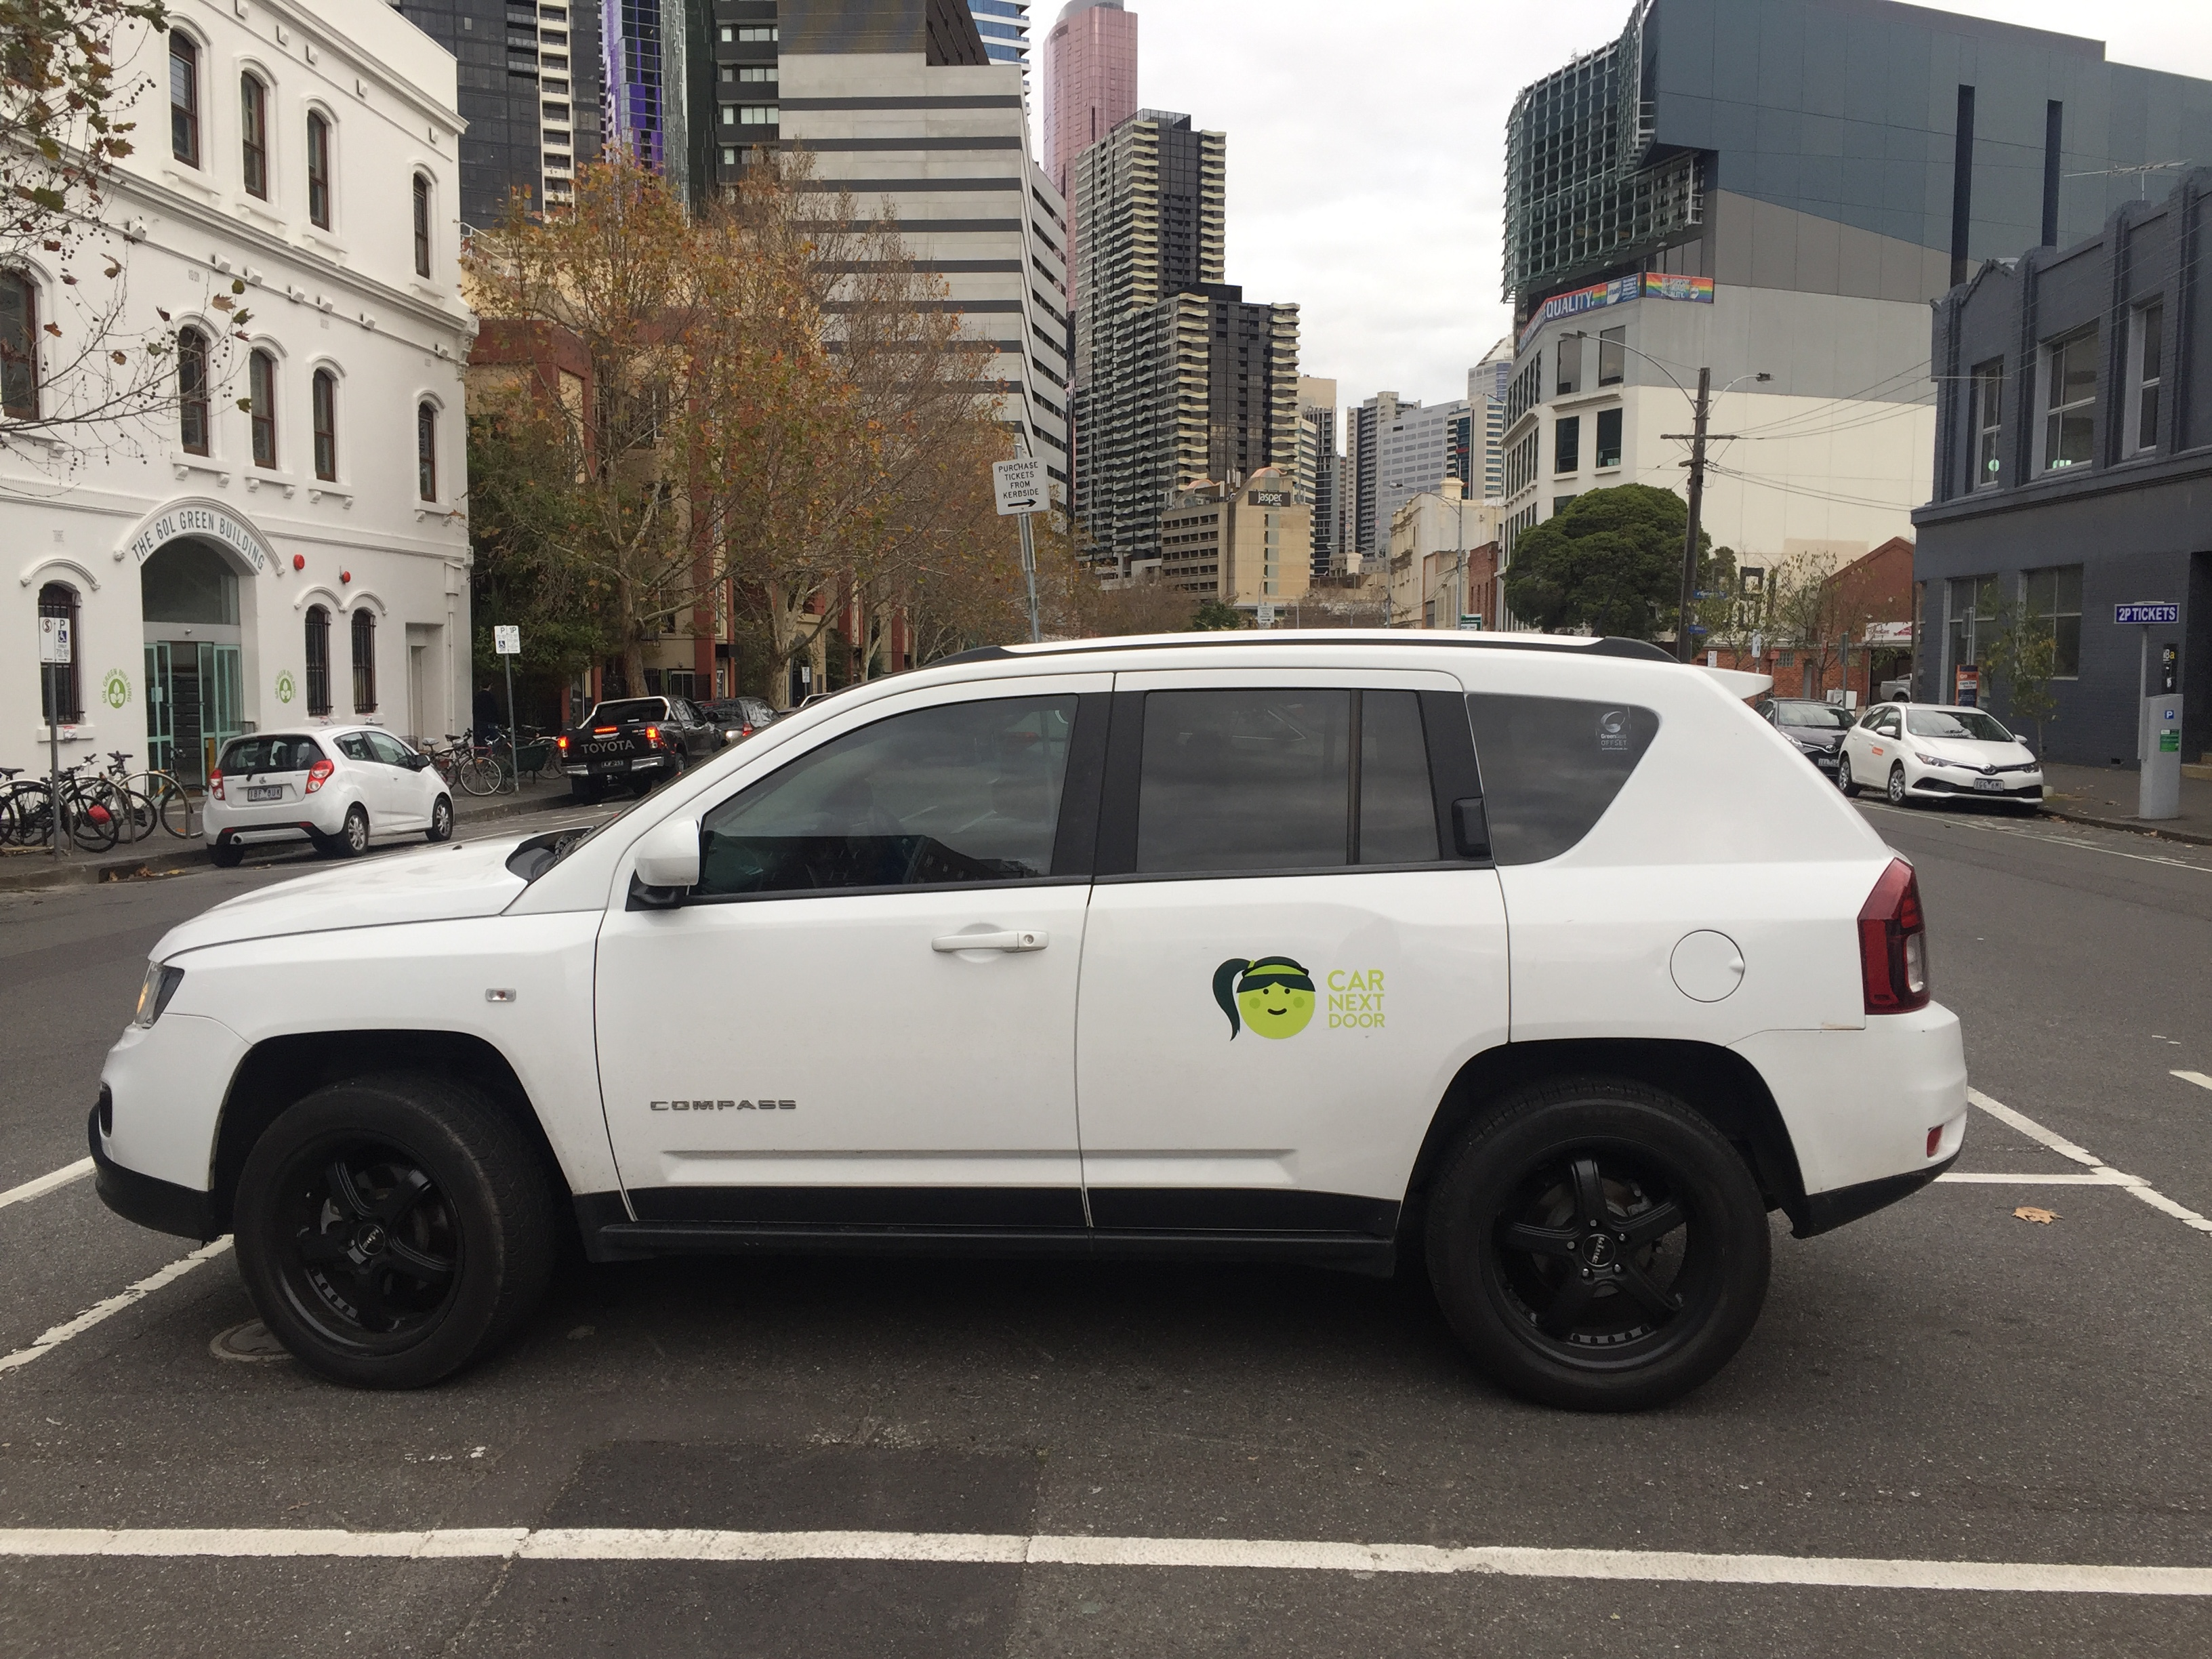 Picture of Rhonda's 2013 Jeep Compass